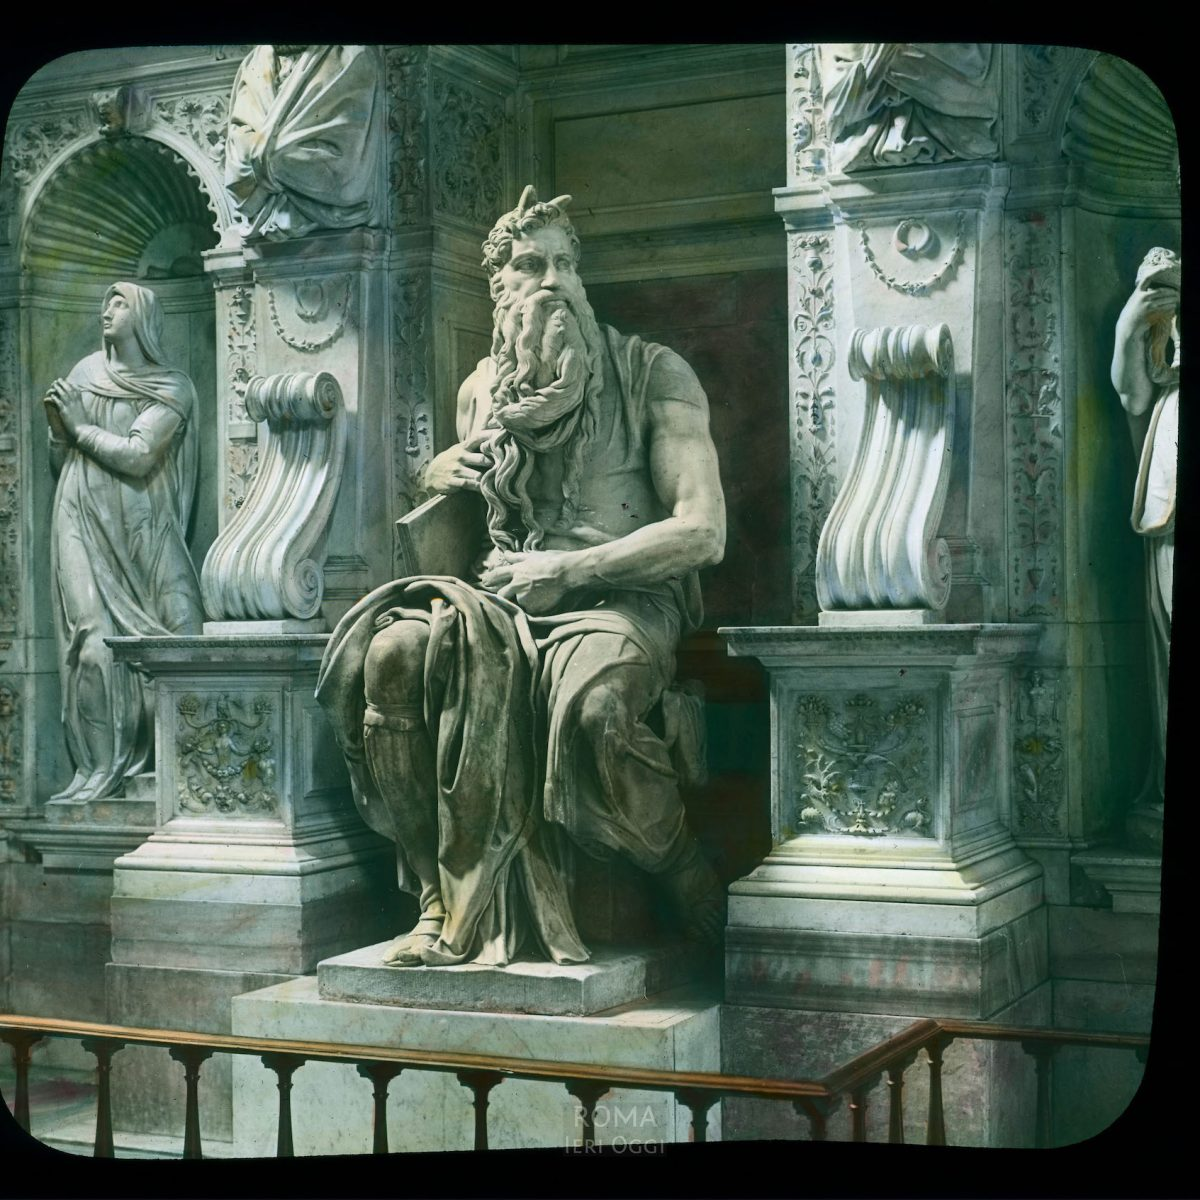 """Rome. San Pietro in Vincoli: Michelangelo's """"Moses"""" View in tinted lantern slide, ca. 1919-1938. The marble sculpture was completed in 1515."""